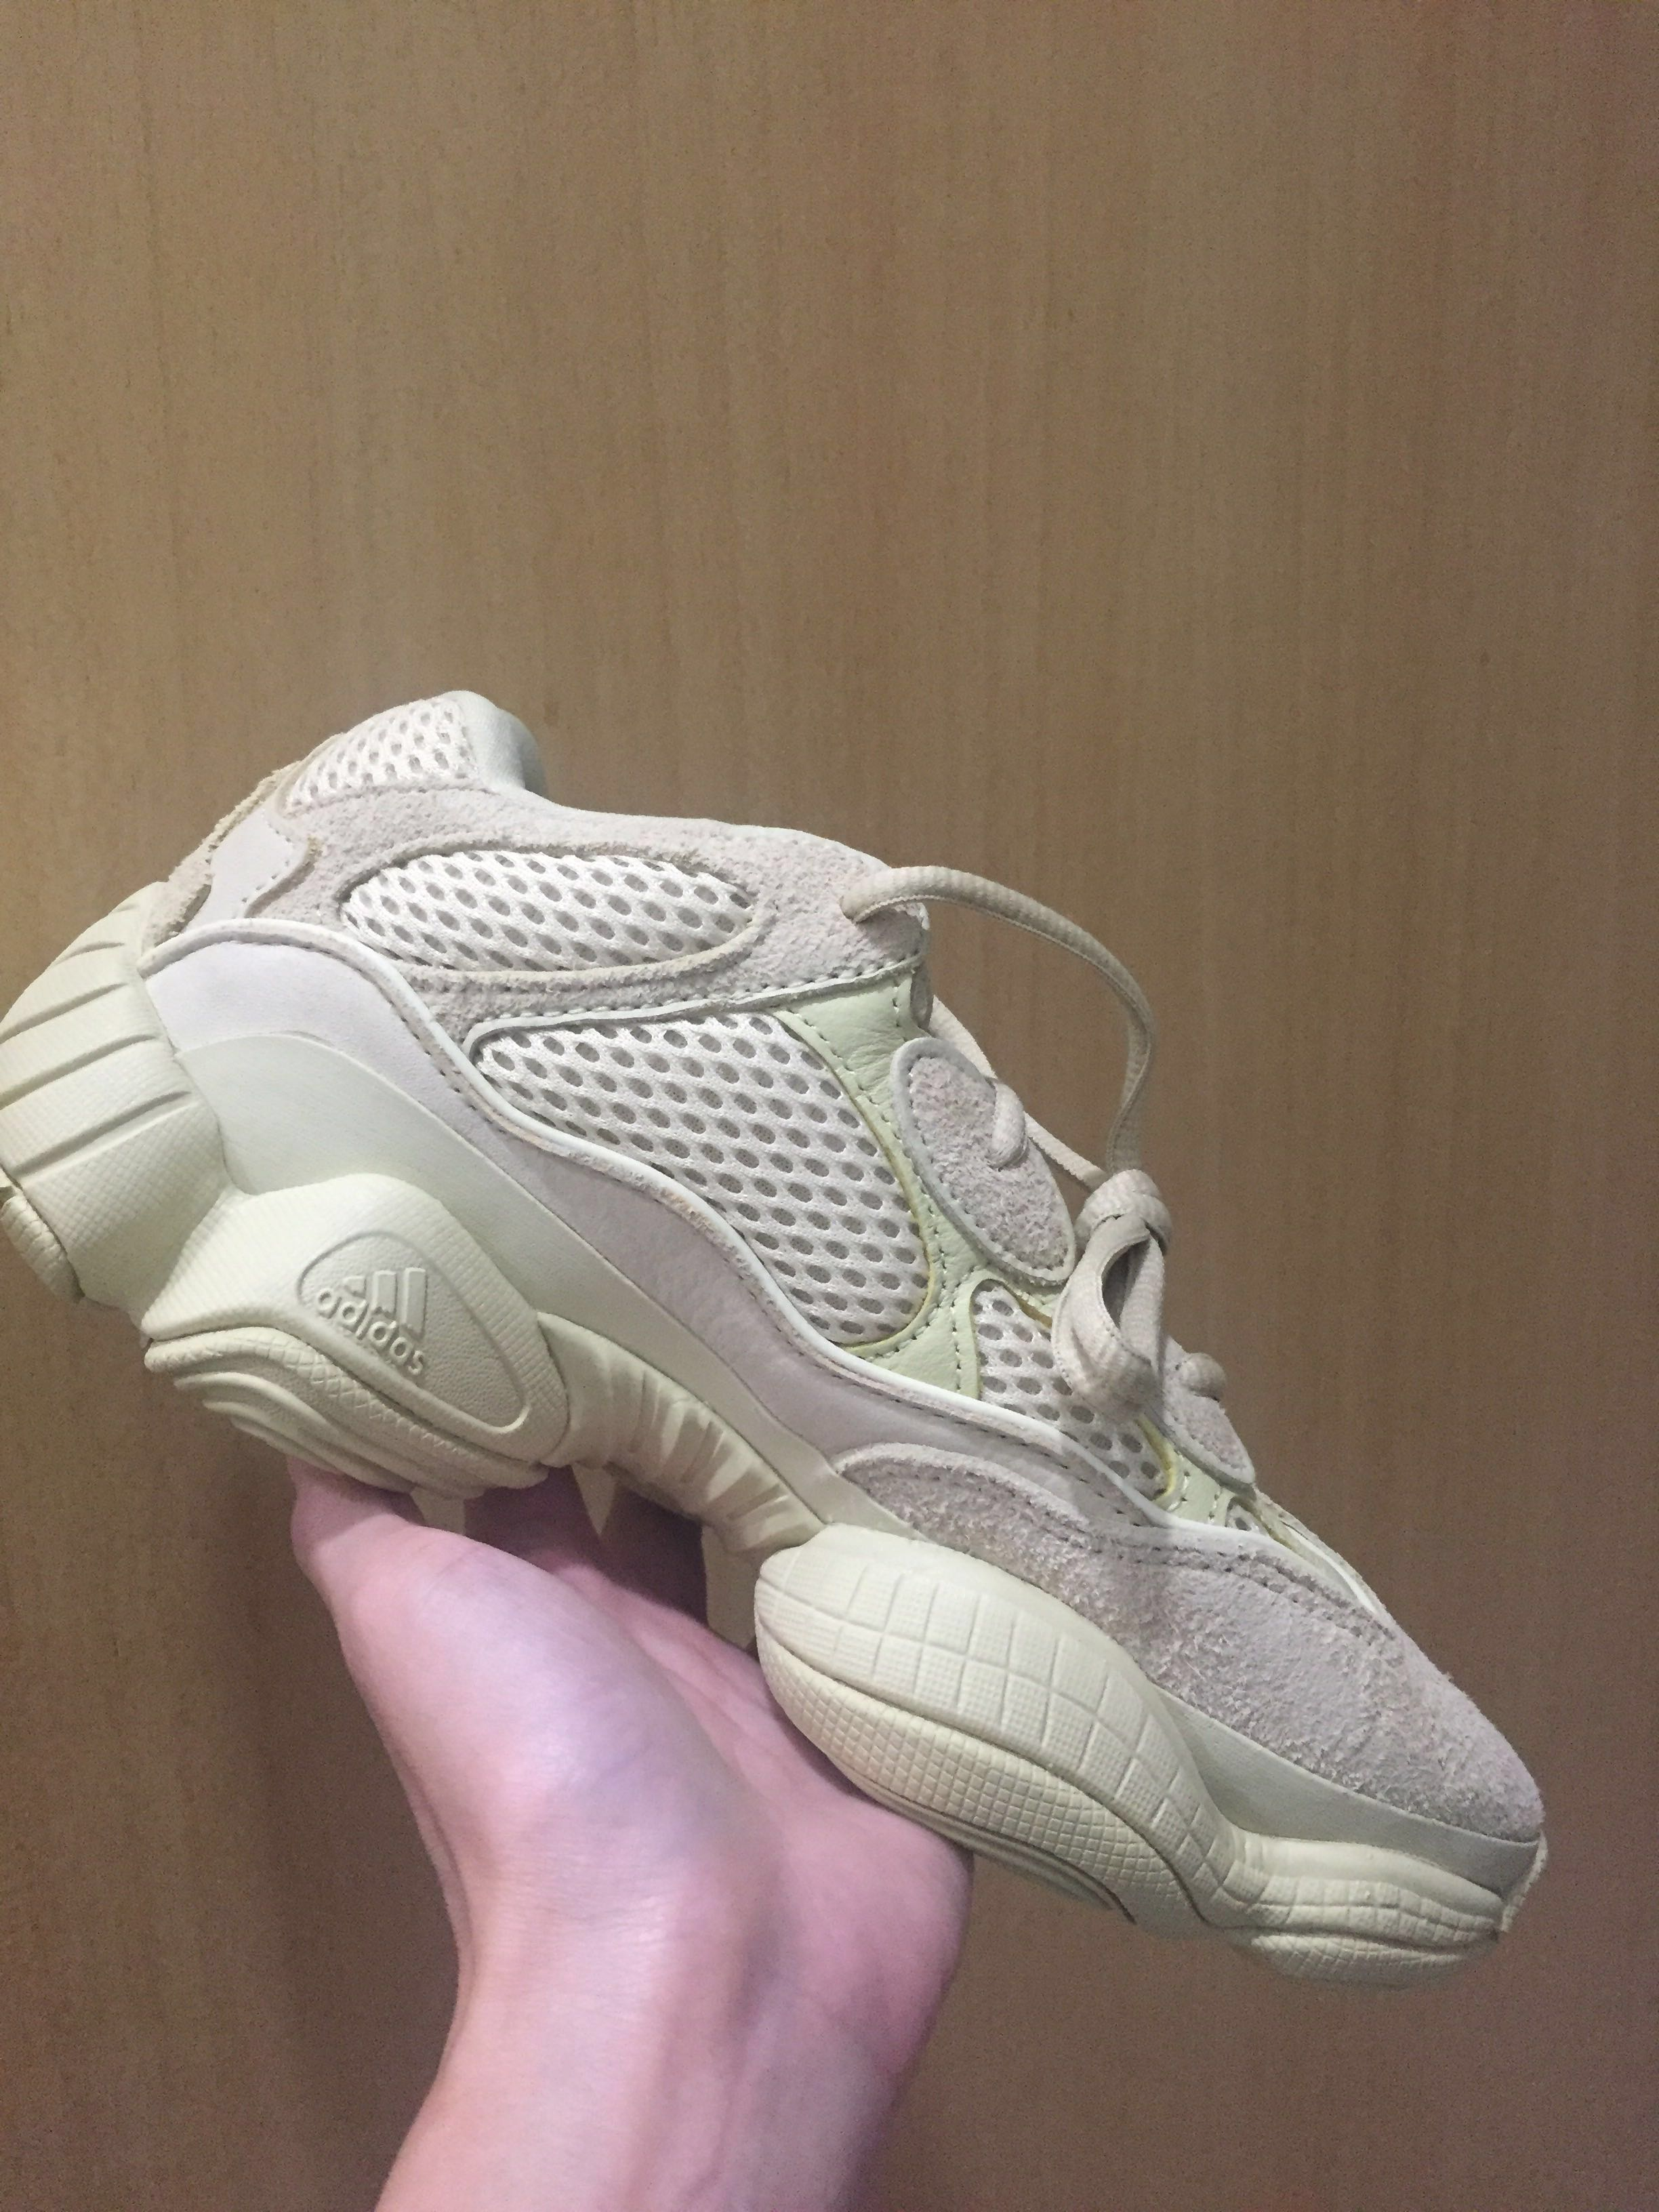 9f9adf705e6ae adidas Yeezy 500 Super Moon Yellow